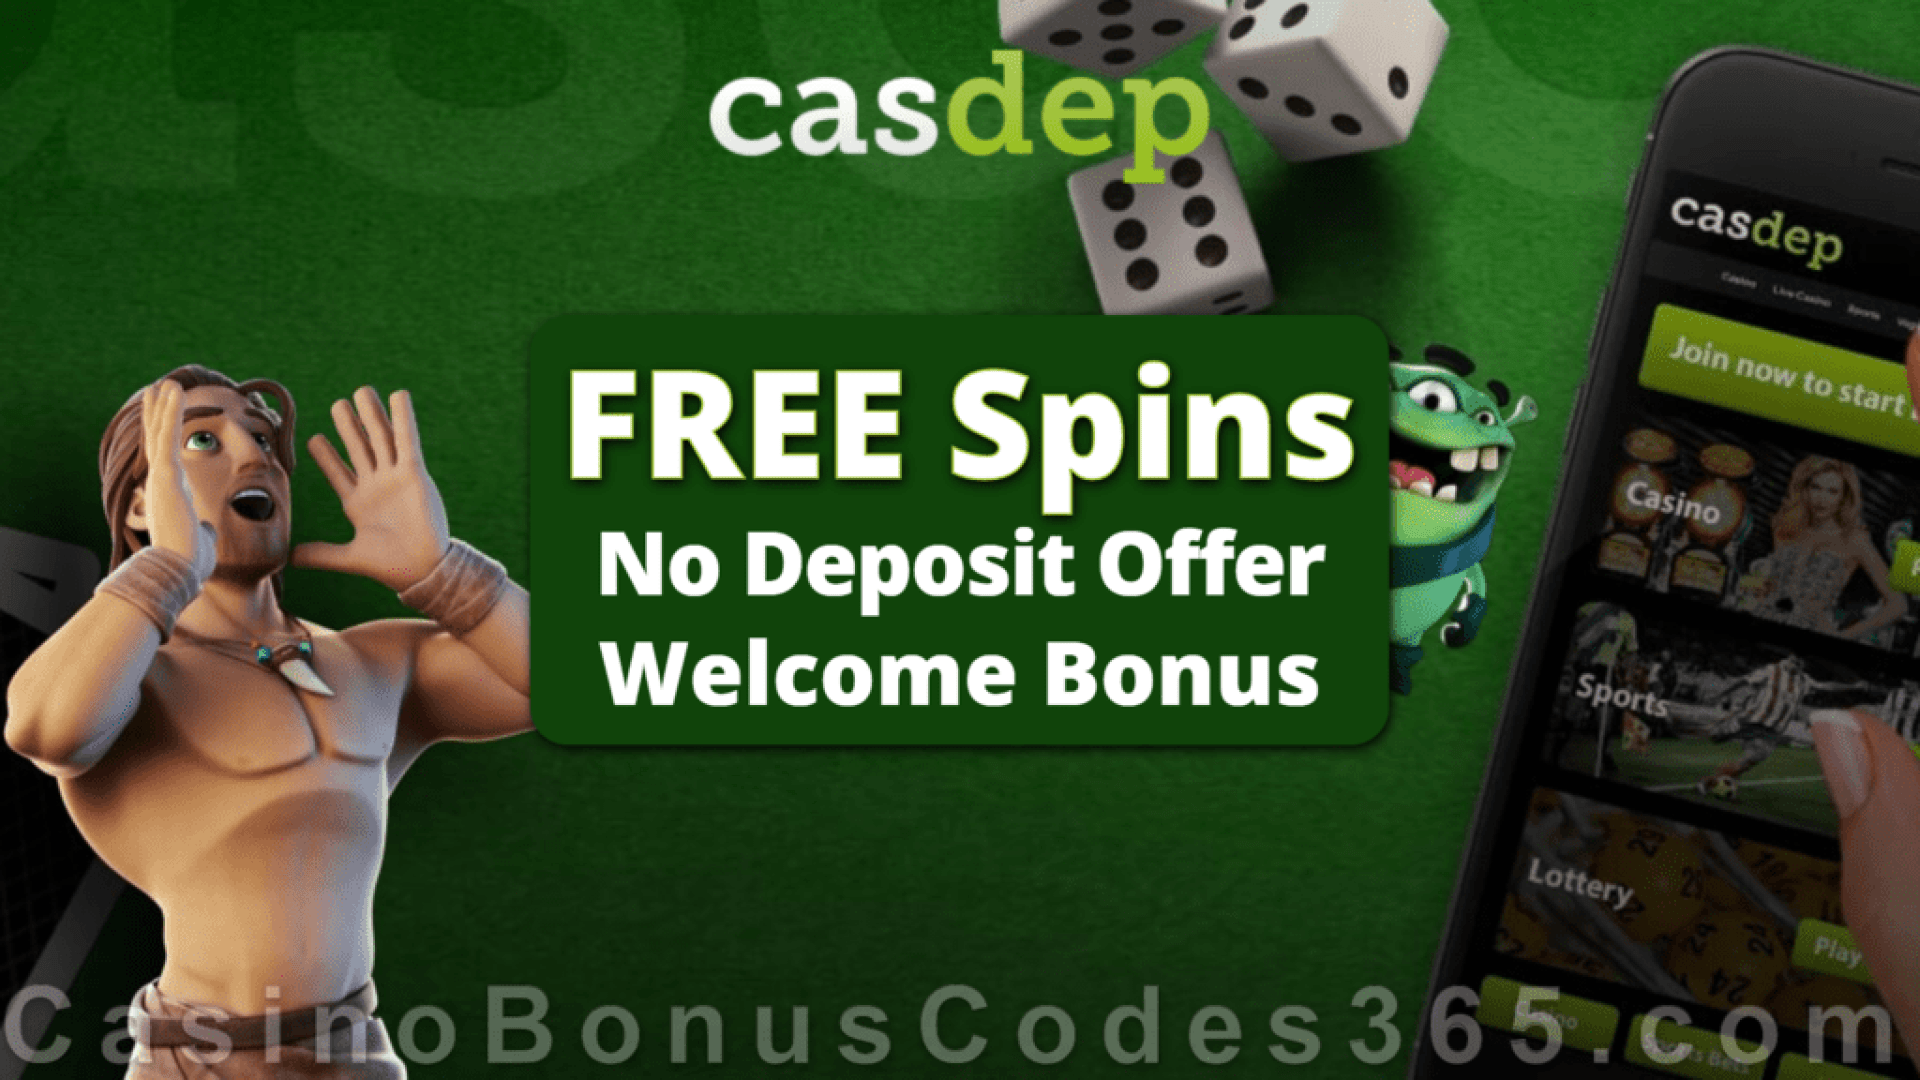 Casdep Casino No Deposit Welcome FREE Spins